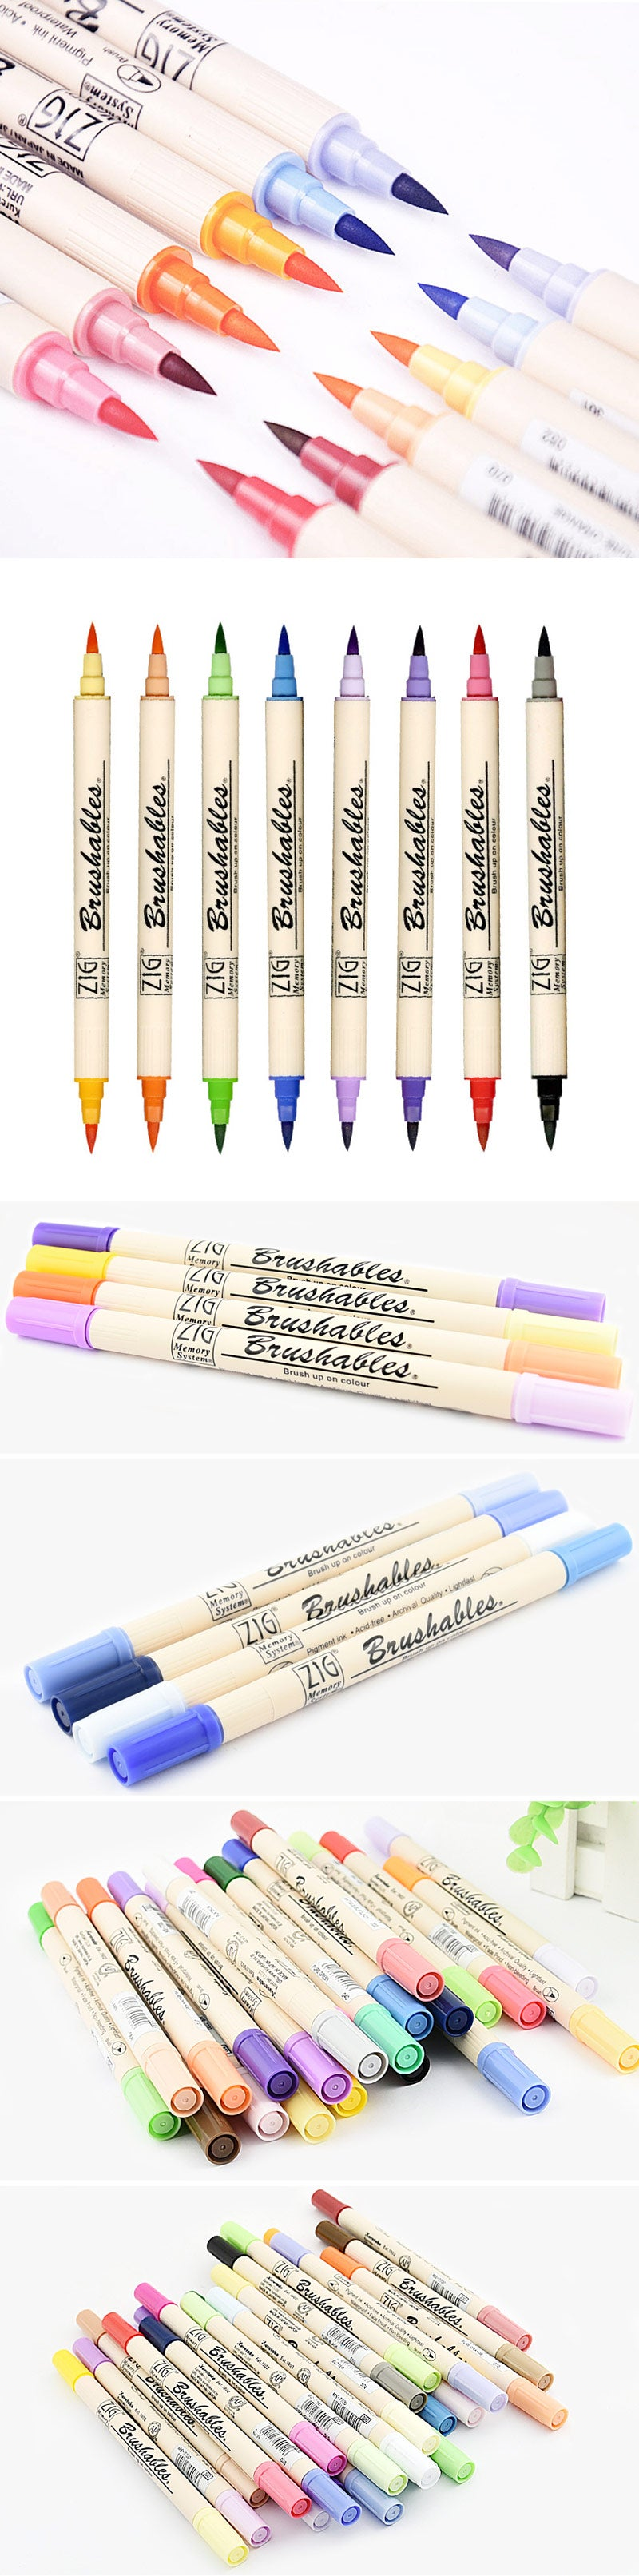 Kuretake ZIG Memory System Brushables Watercolor Brush Pen - showcase